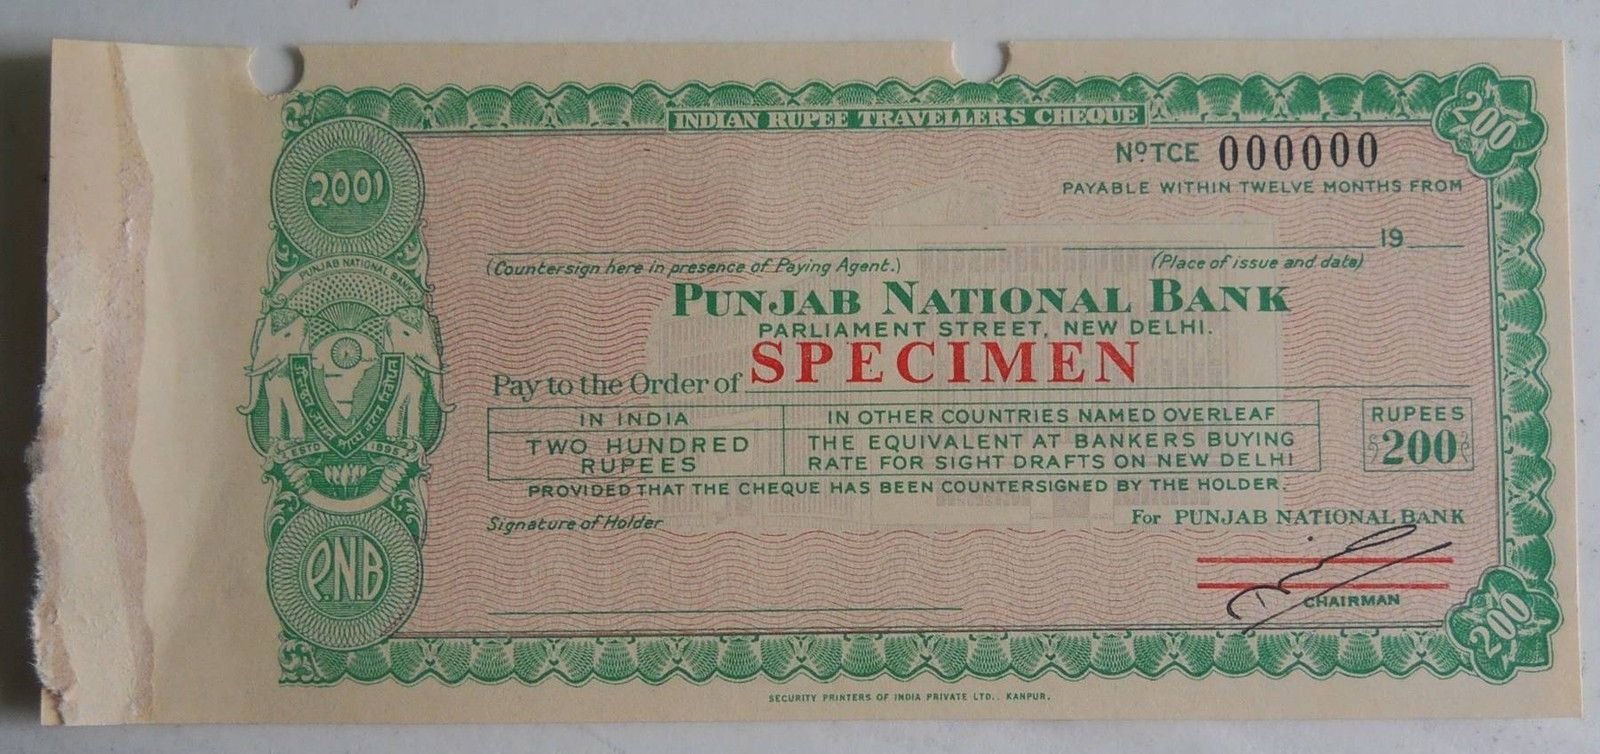 Punjab National Bank - Cheque